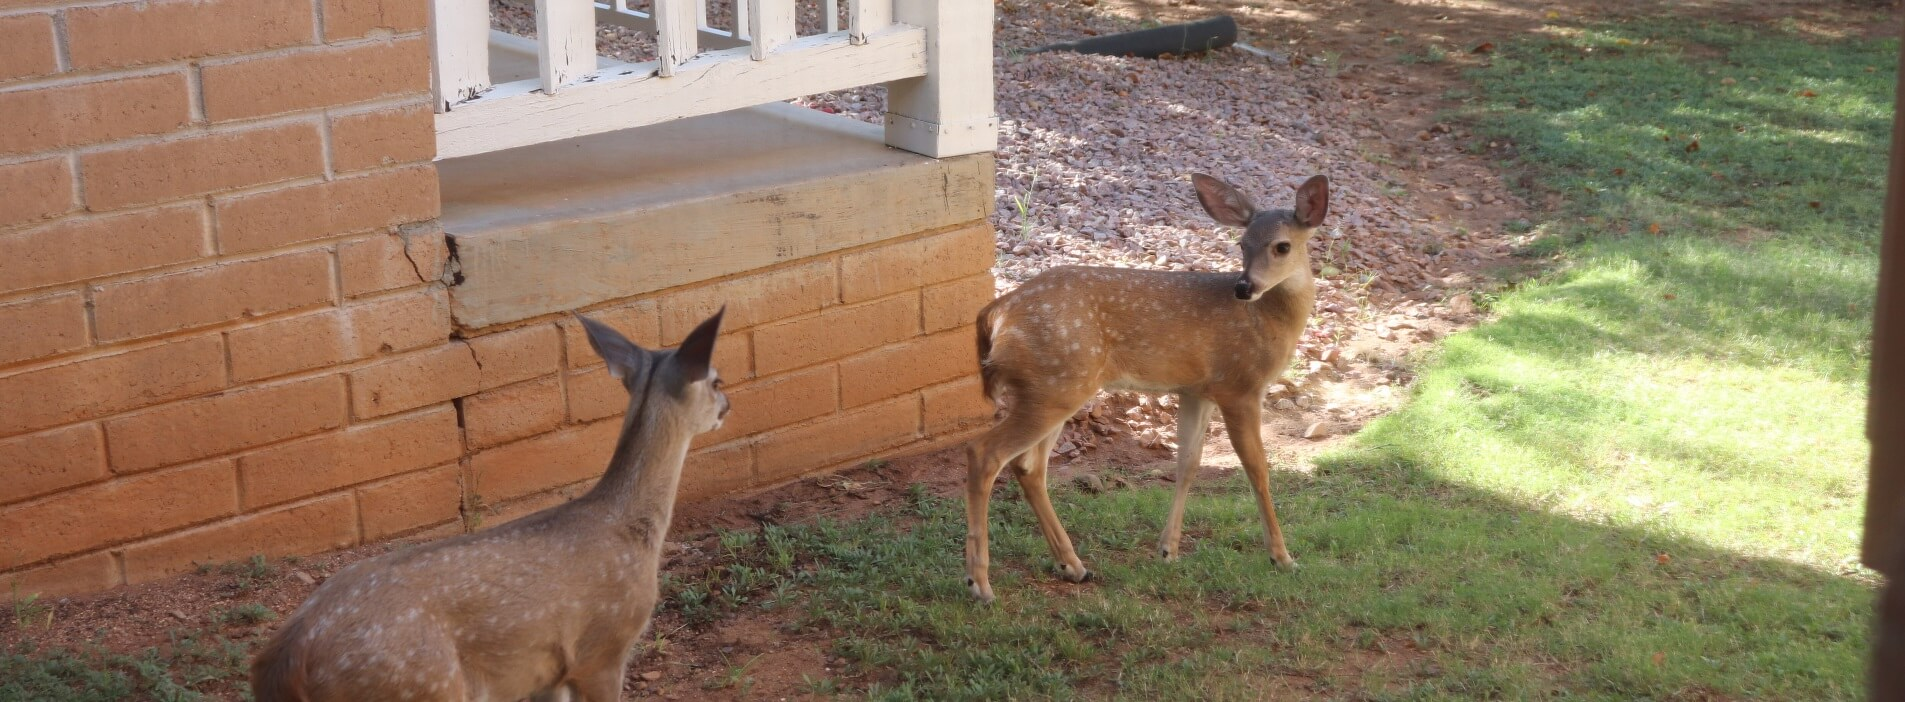 2021 09 26 twin fawns